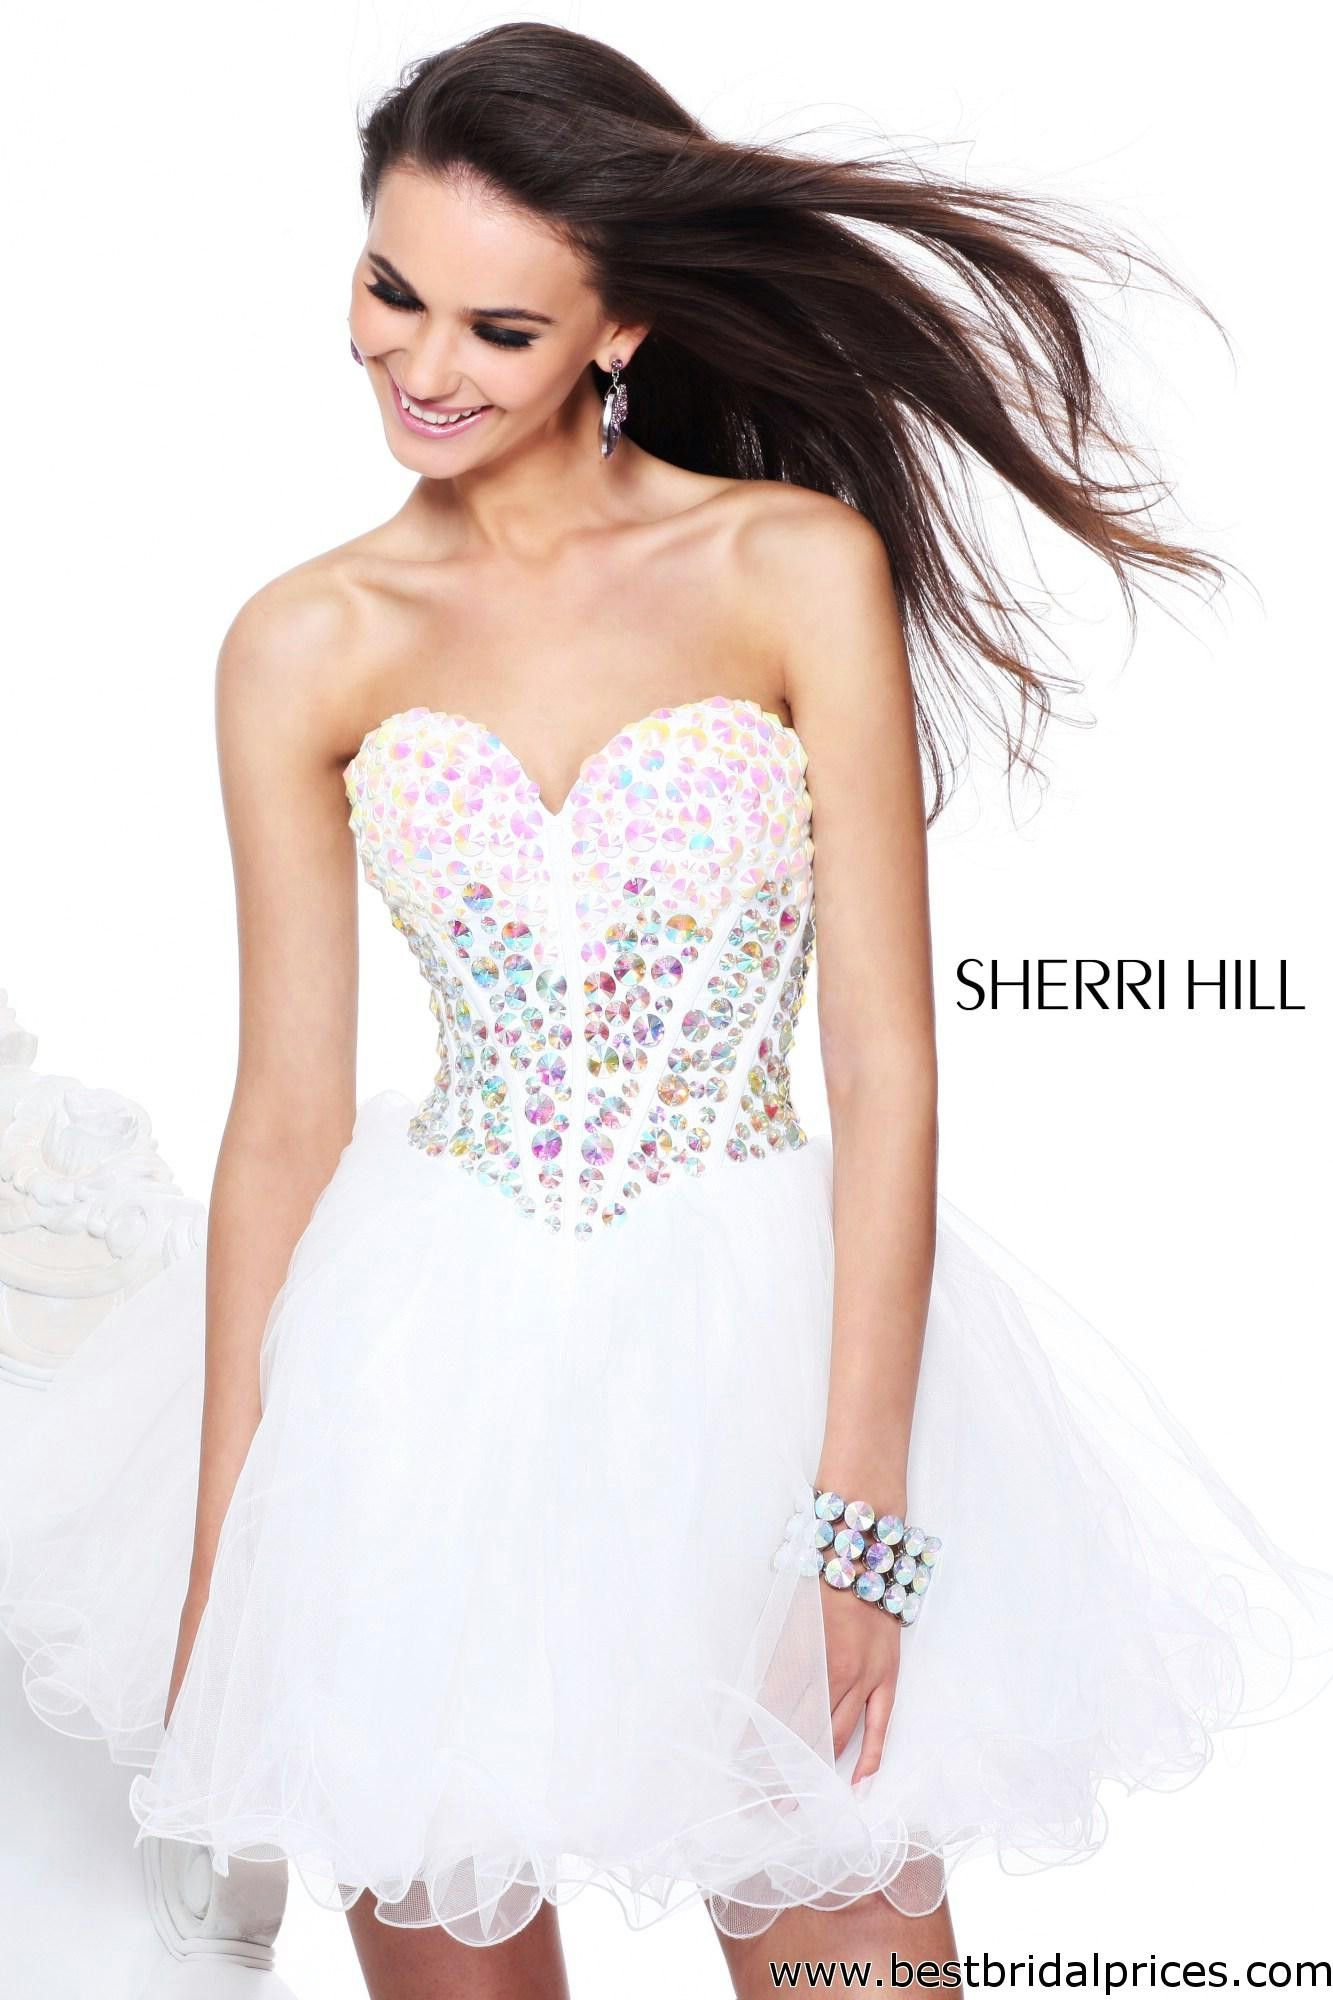 Sherri hill rehearsal dinner dress one day uc pinterest